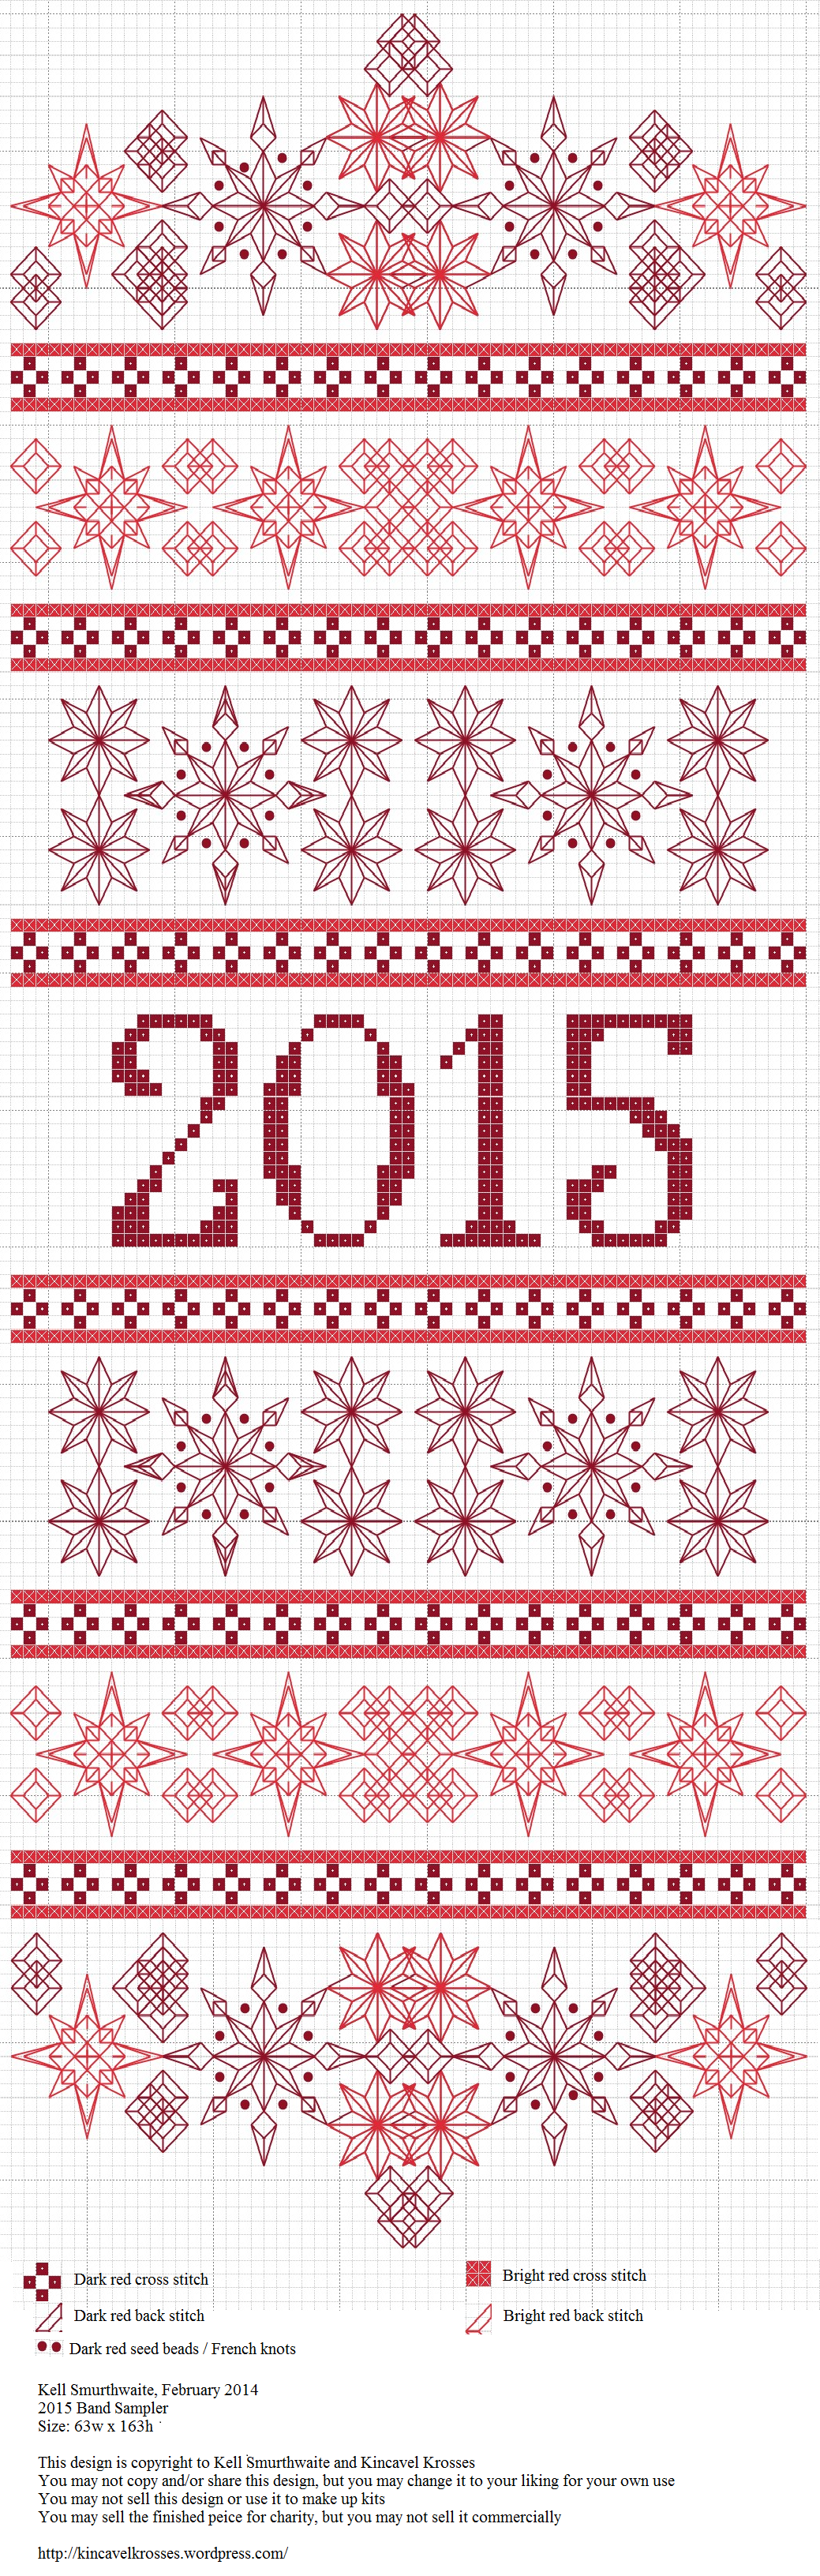 Counted cross stitch 2015 Band Sampler - please respect the copyright on this free sampler.